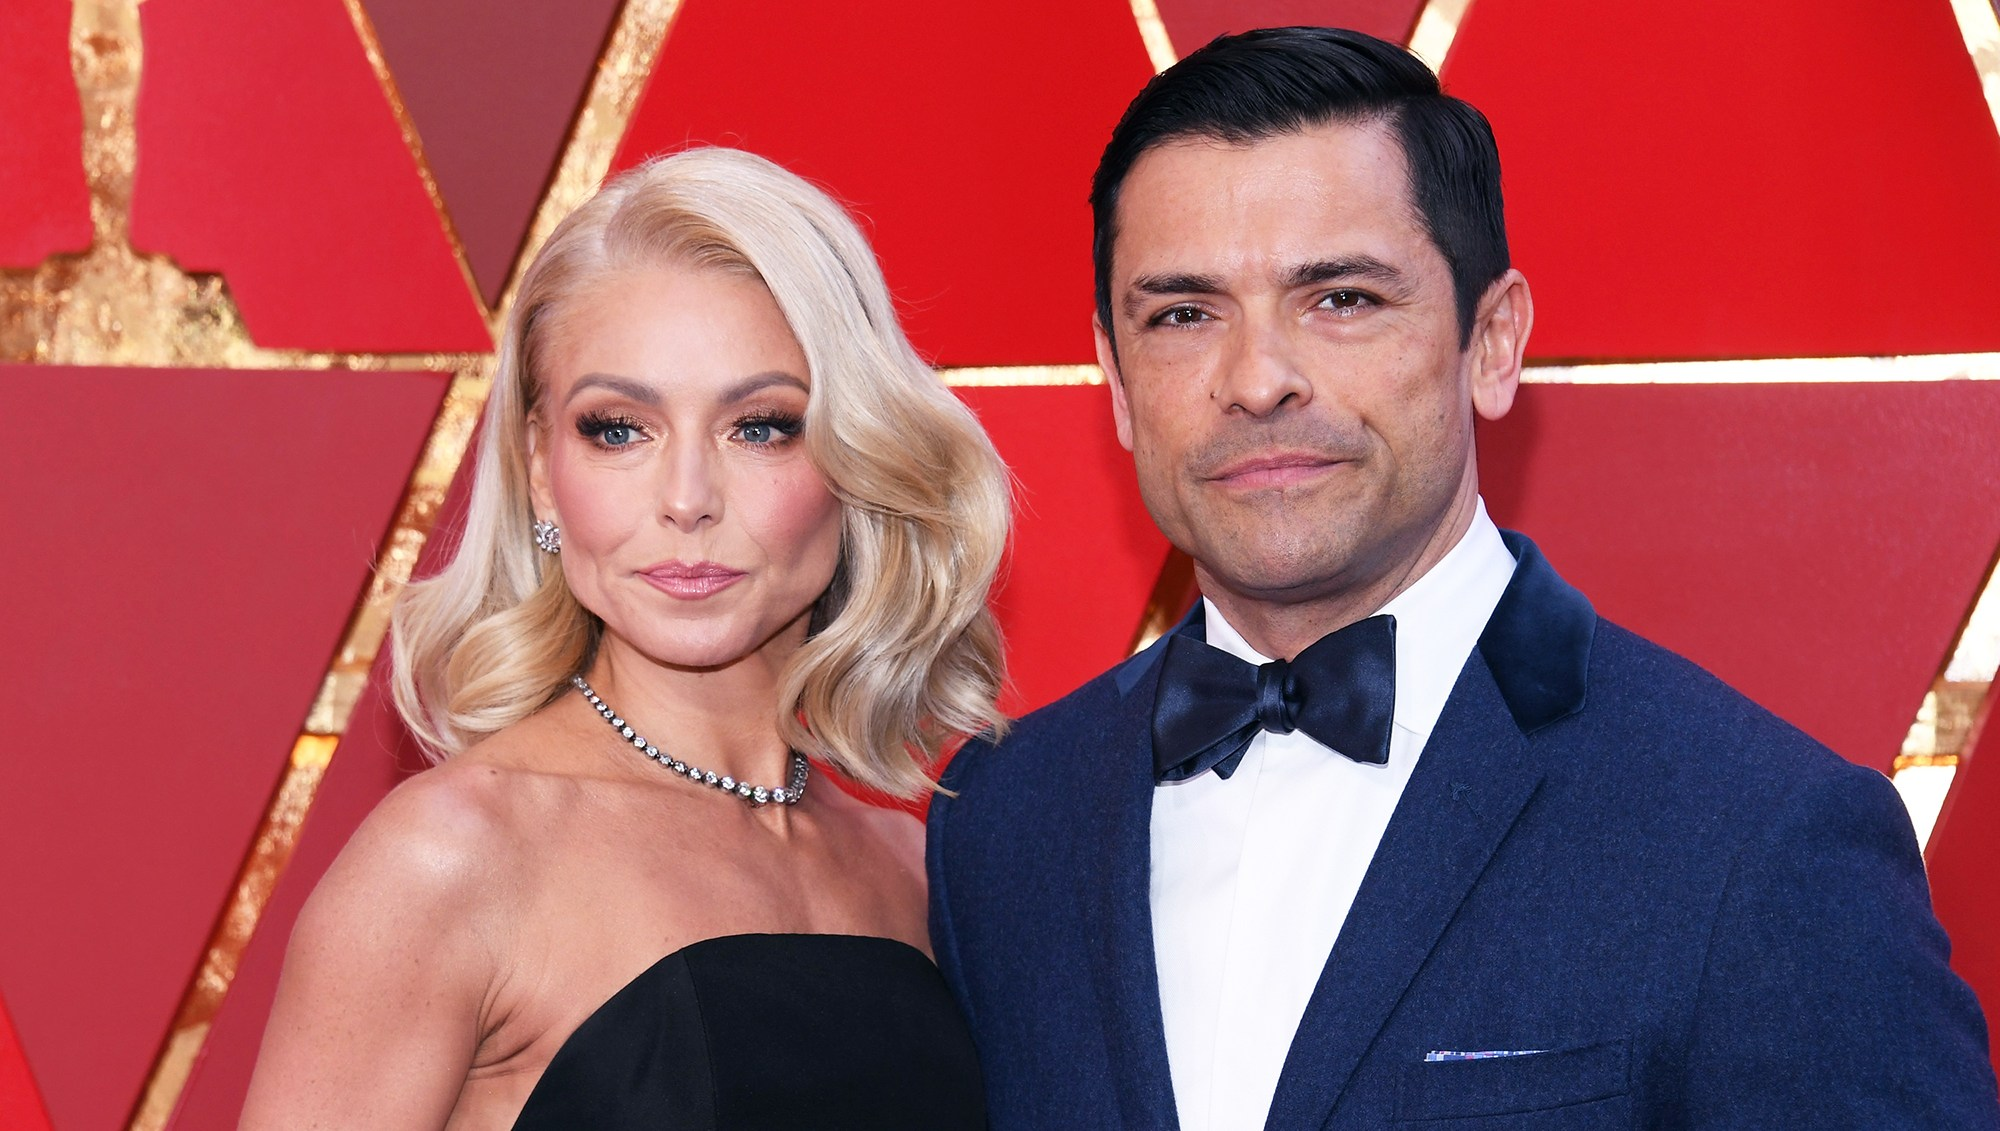 Mark Consuelos Reveals How Kelly Ripa Landed Her 'Riverdale' Role: He Had Nothing to Do With It!